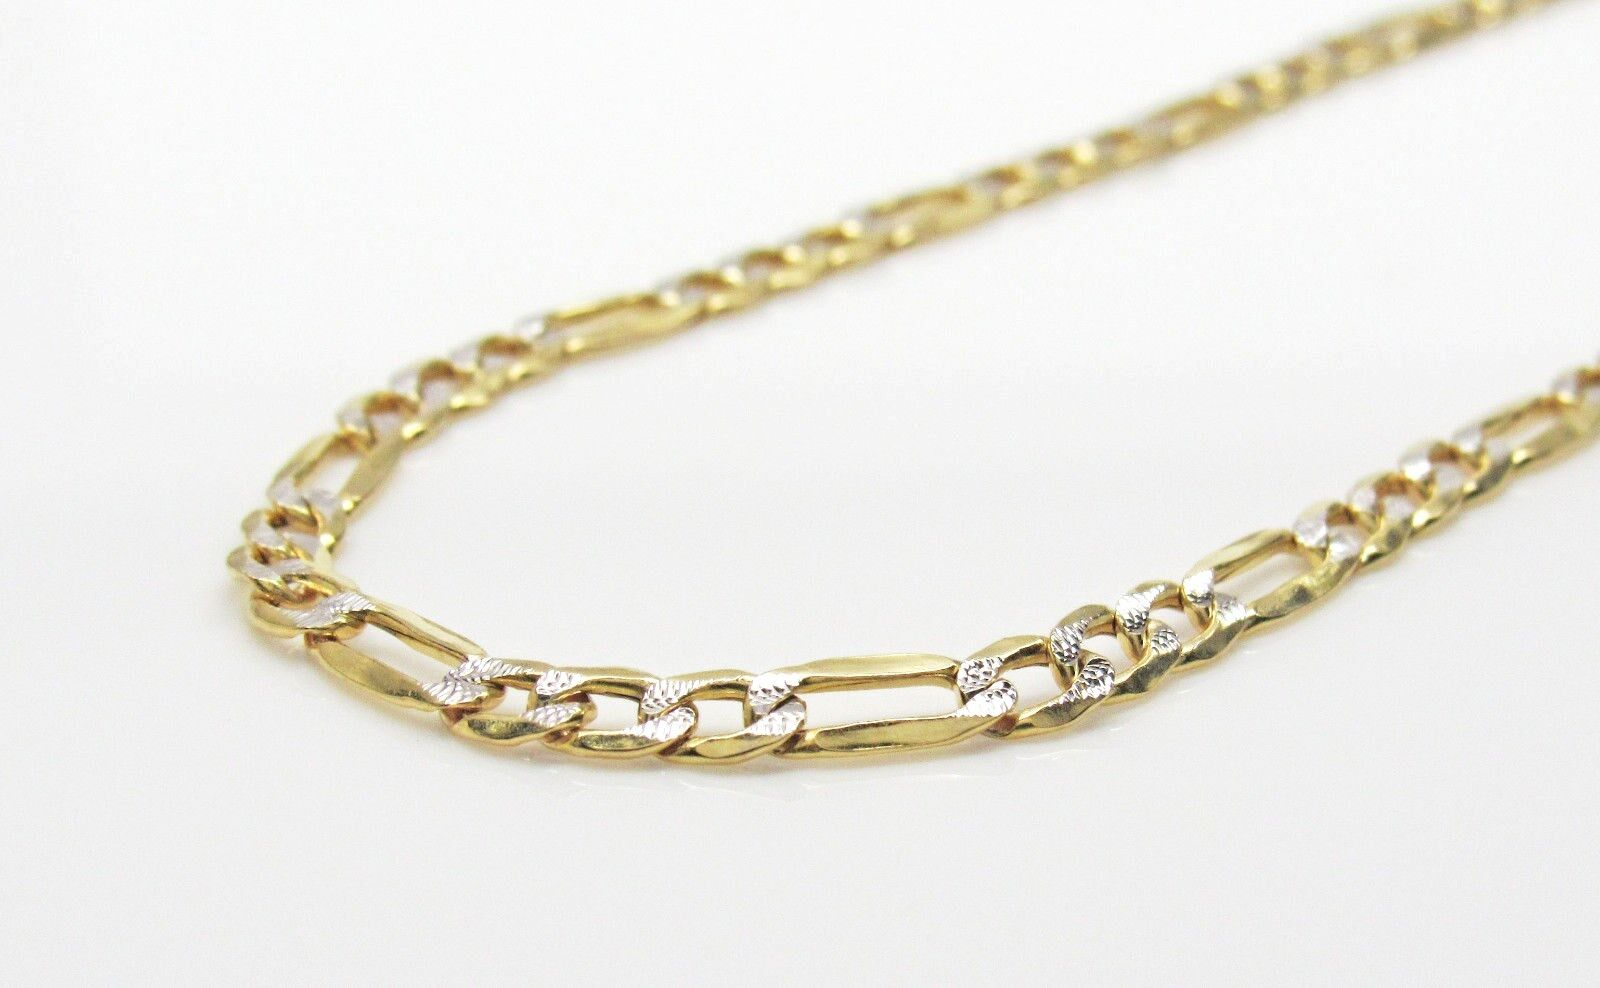 10K gold Diamond Cut Figaro Chain 22 Inches 3.5MM 4.3 Grams